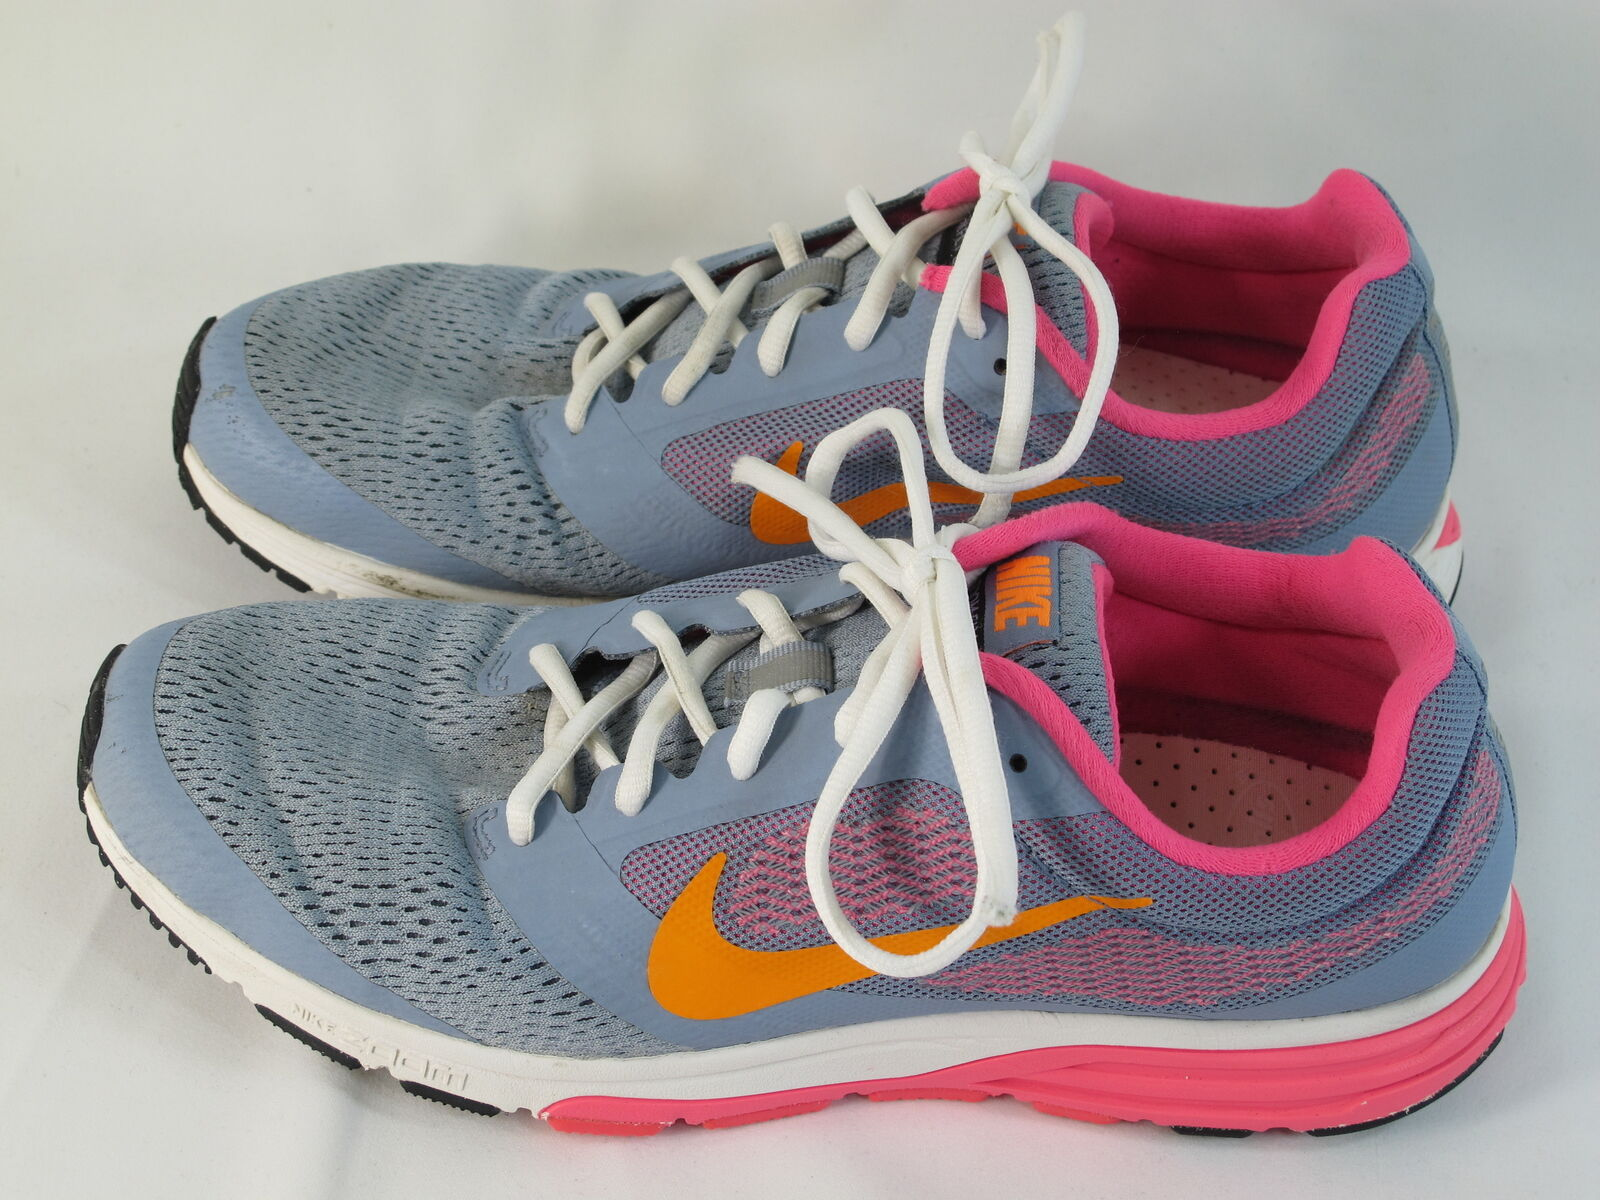 5e2a25e04dd1f Nike Air Zoom Fly 2 Running Shoes Women s Size 11 US Excellent Plus  Condition